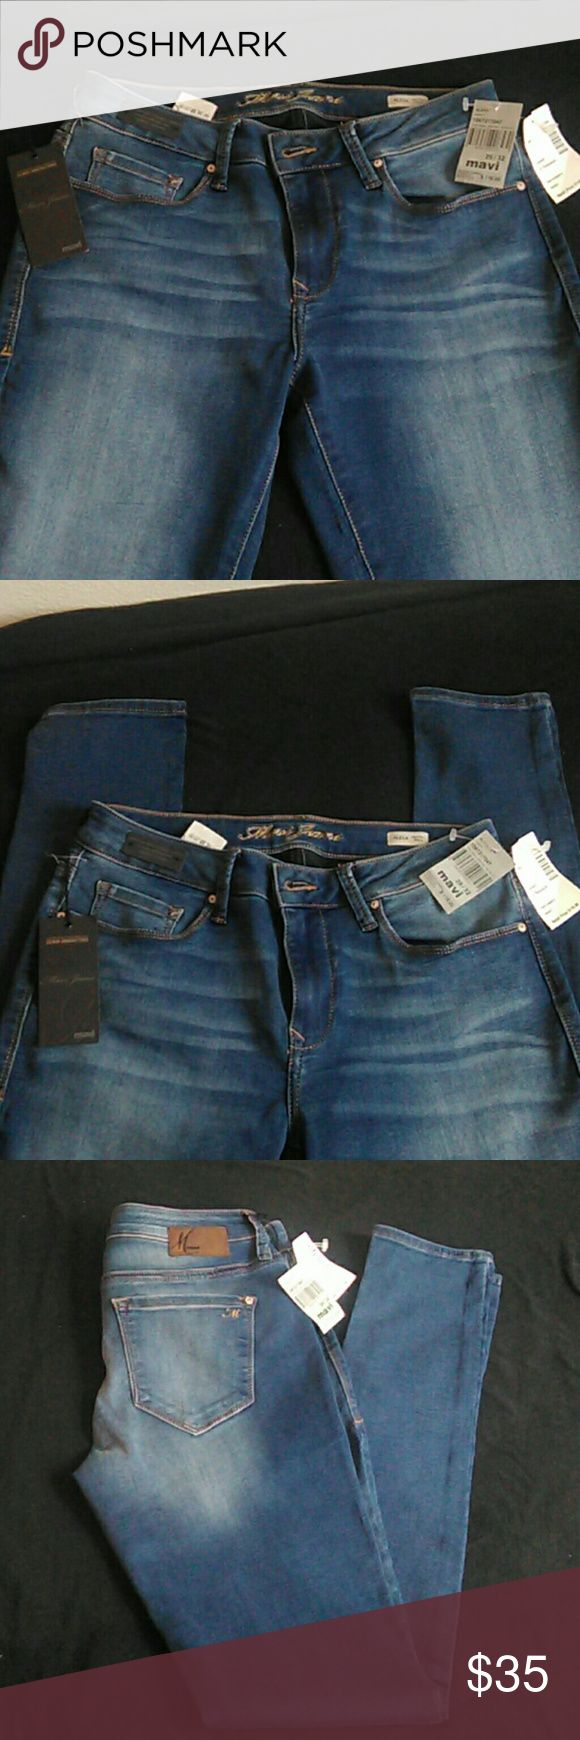 MAVI Mid-Rise Skinny Jeans (Size 29/32, or, 7) MAVI Alexa Shanti Authentic Aged Denim Jeans Brand new w/ tags Mid-Rise Skinny style Size is: 29/32, or, 7 juniors Original Price $118 These jeans are the highest quality denim that has a unique softness and superior recovery and are extremely comfortable. They are priced to GO! Mavi Jeans Skinny